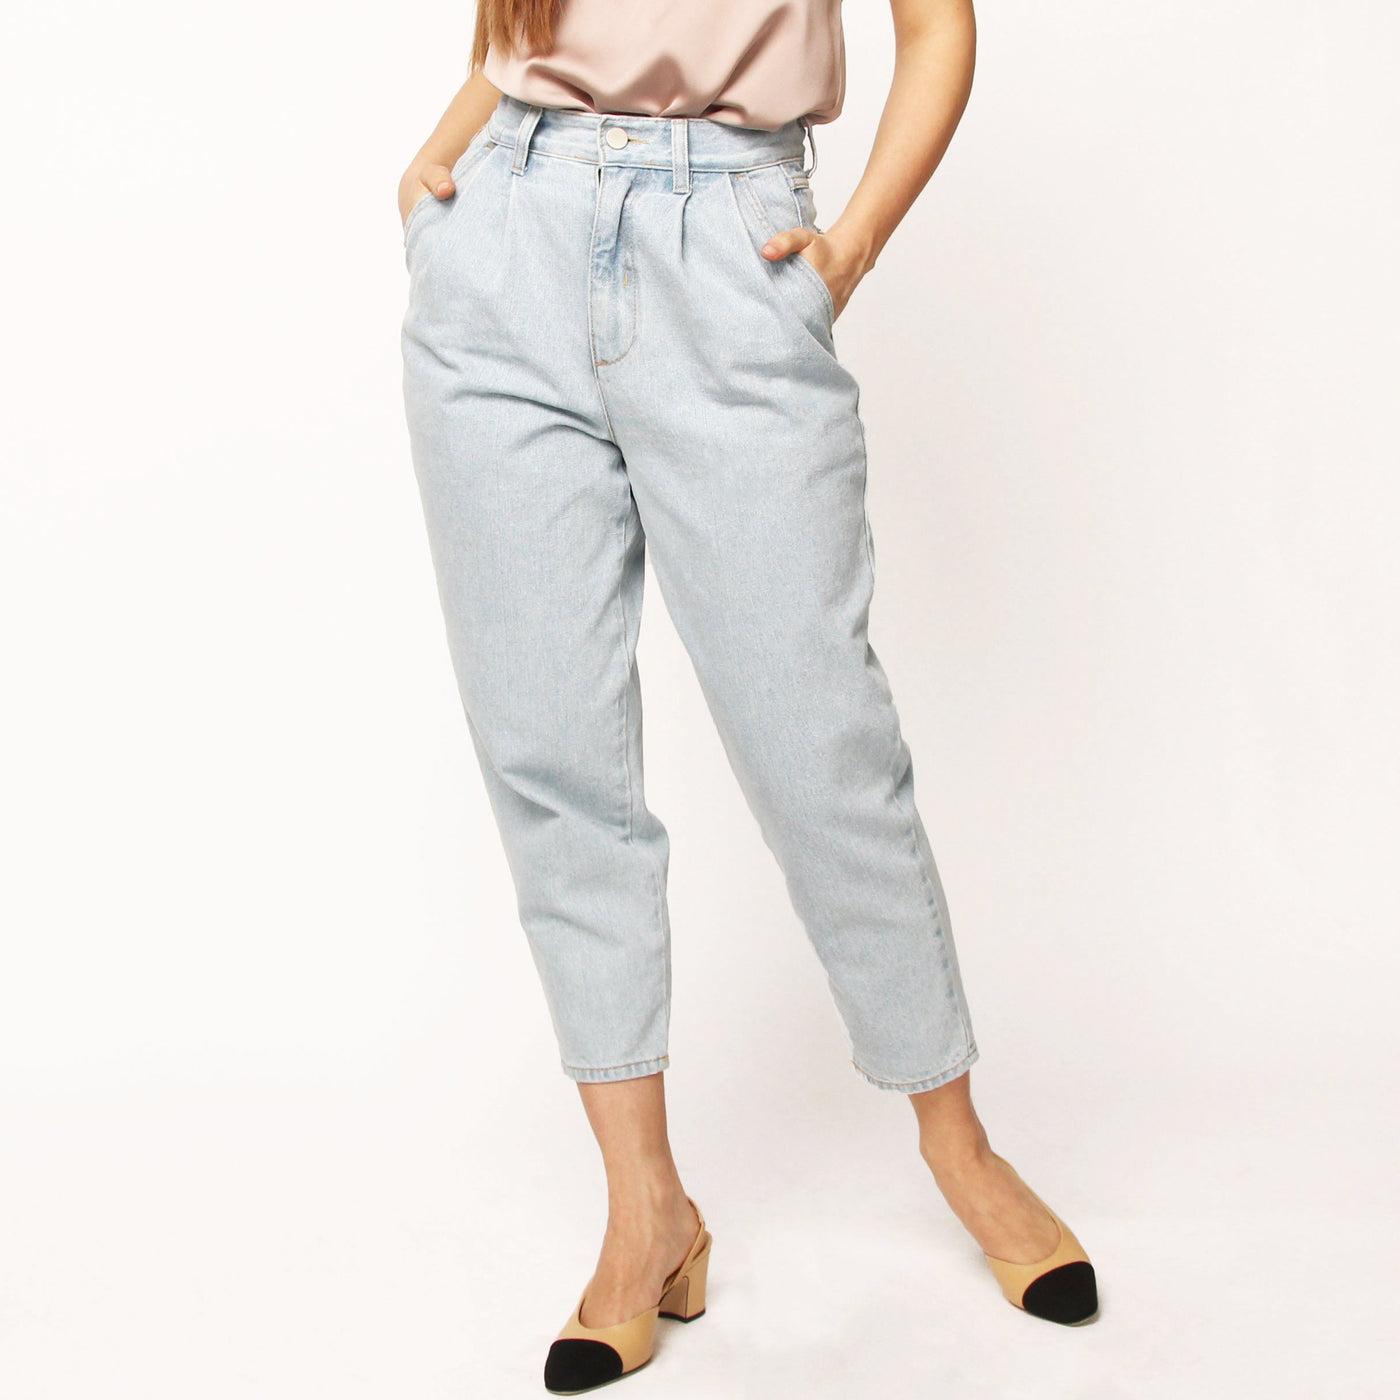 Light Blue Pleated Denim Pants - Marble Hive